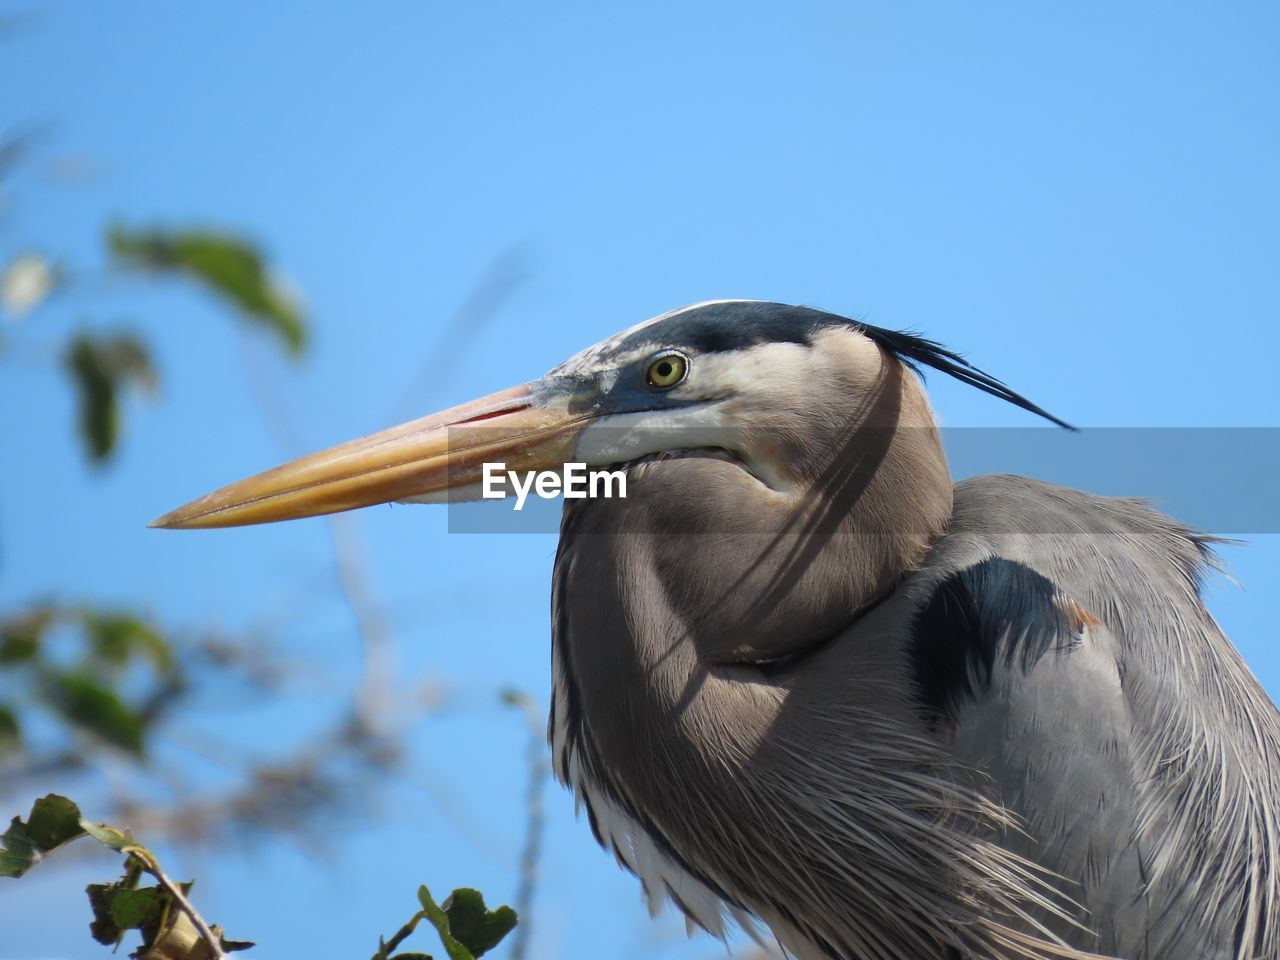 bird, vertebrate, animal themes, animal wildlife, animals in the wild, animal, one animal, focus on foreground, beak, nature, no people, heron, sky, day, close-up, water bird, low angle view, outdoors, blue, clear sky